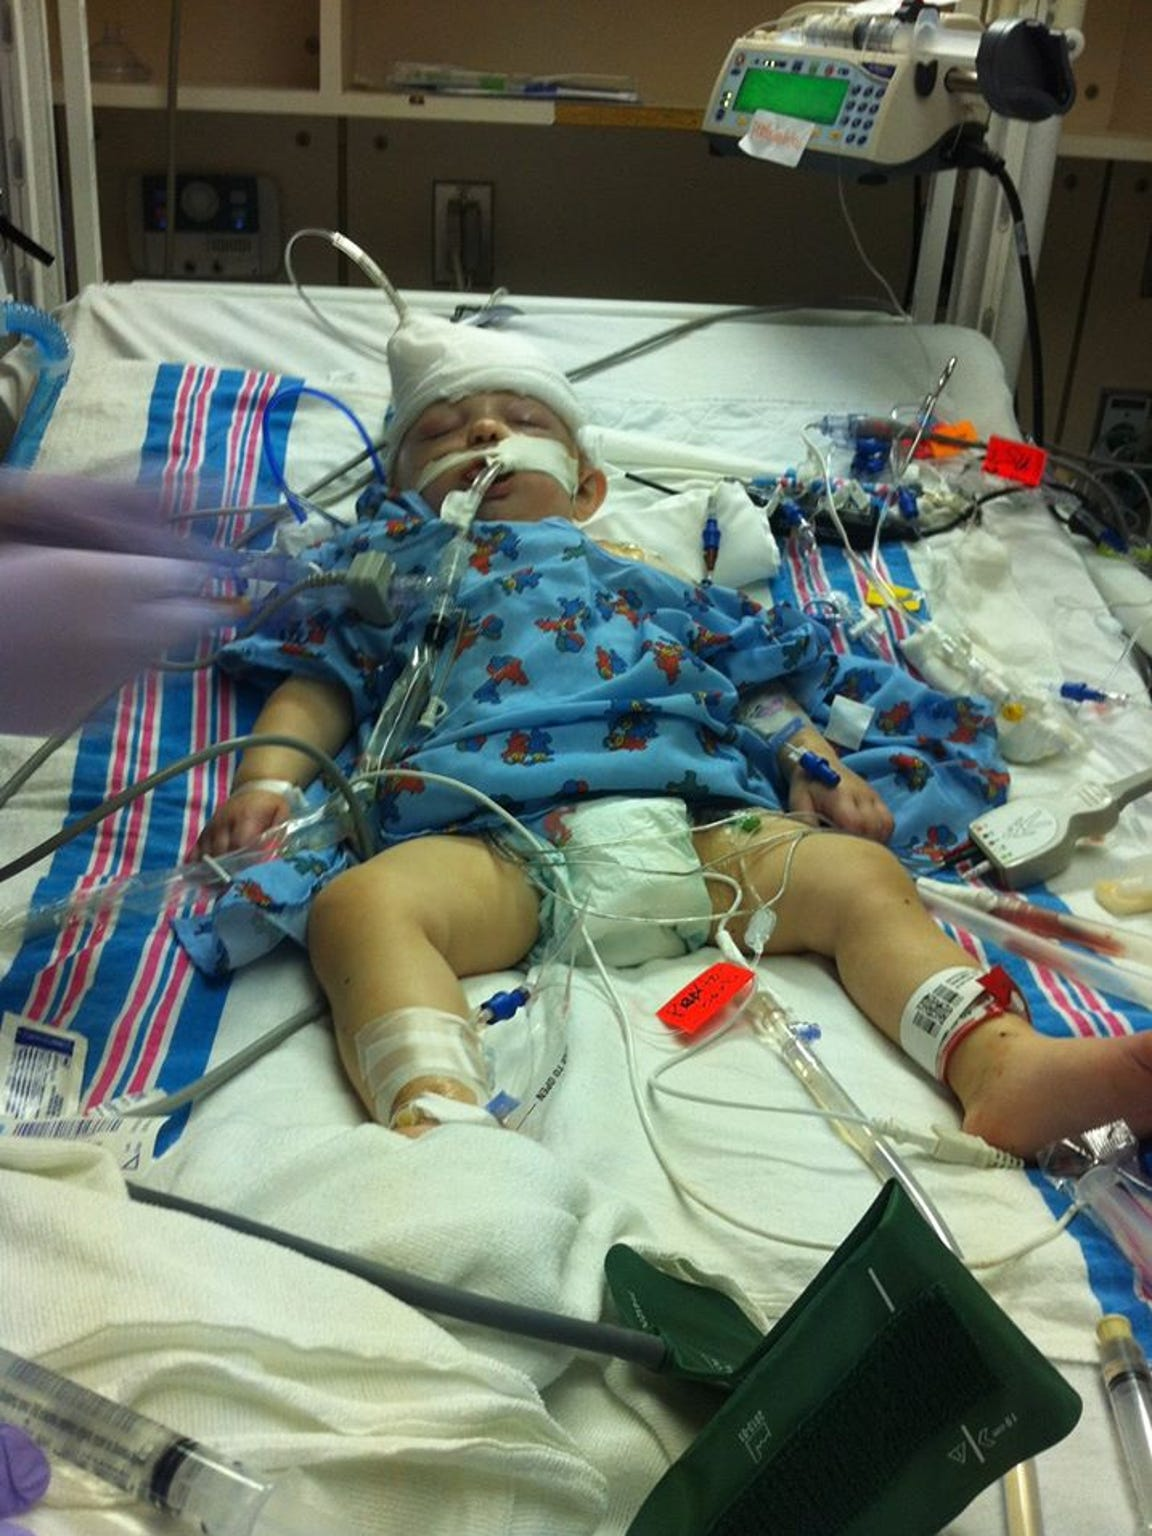 Cameron suffered a deadly brain injury.